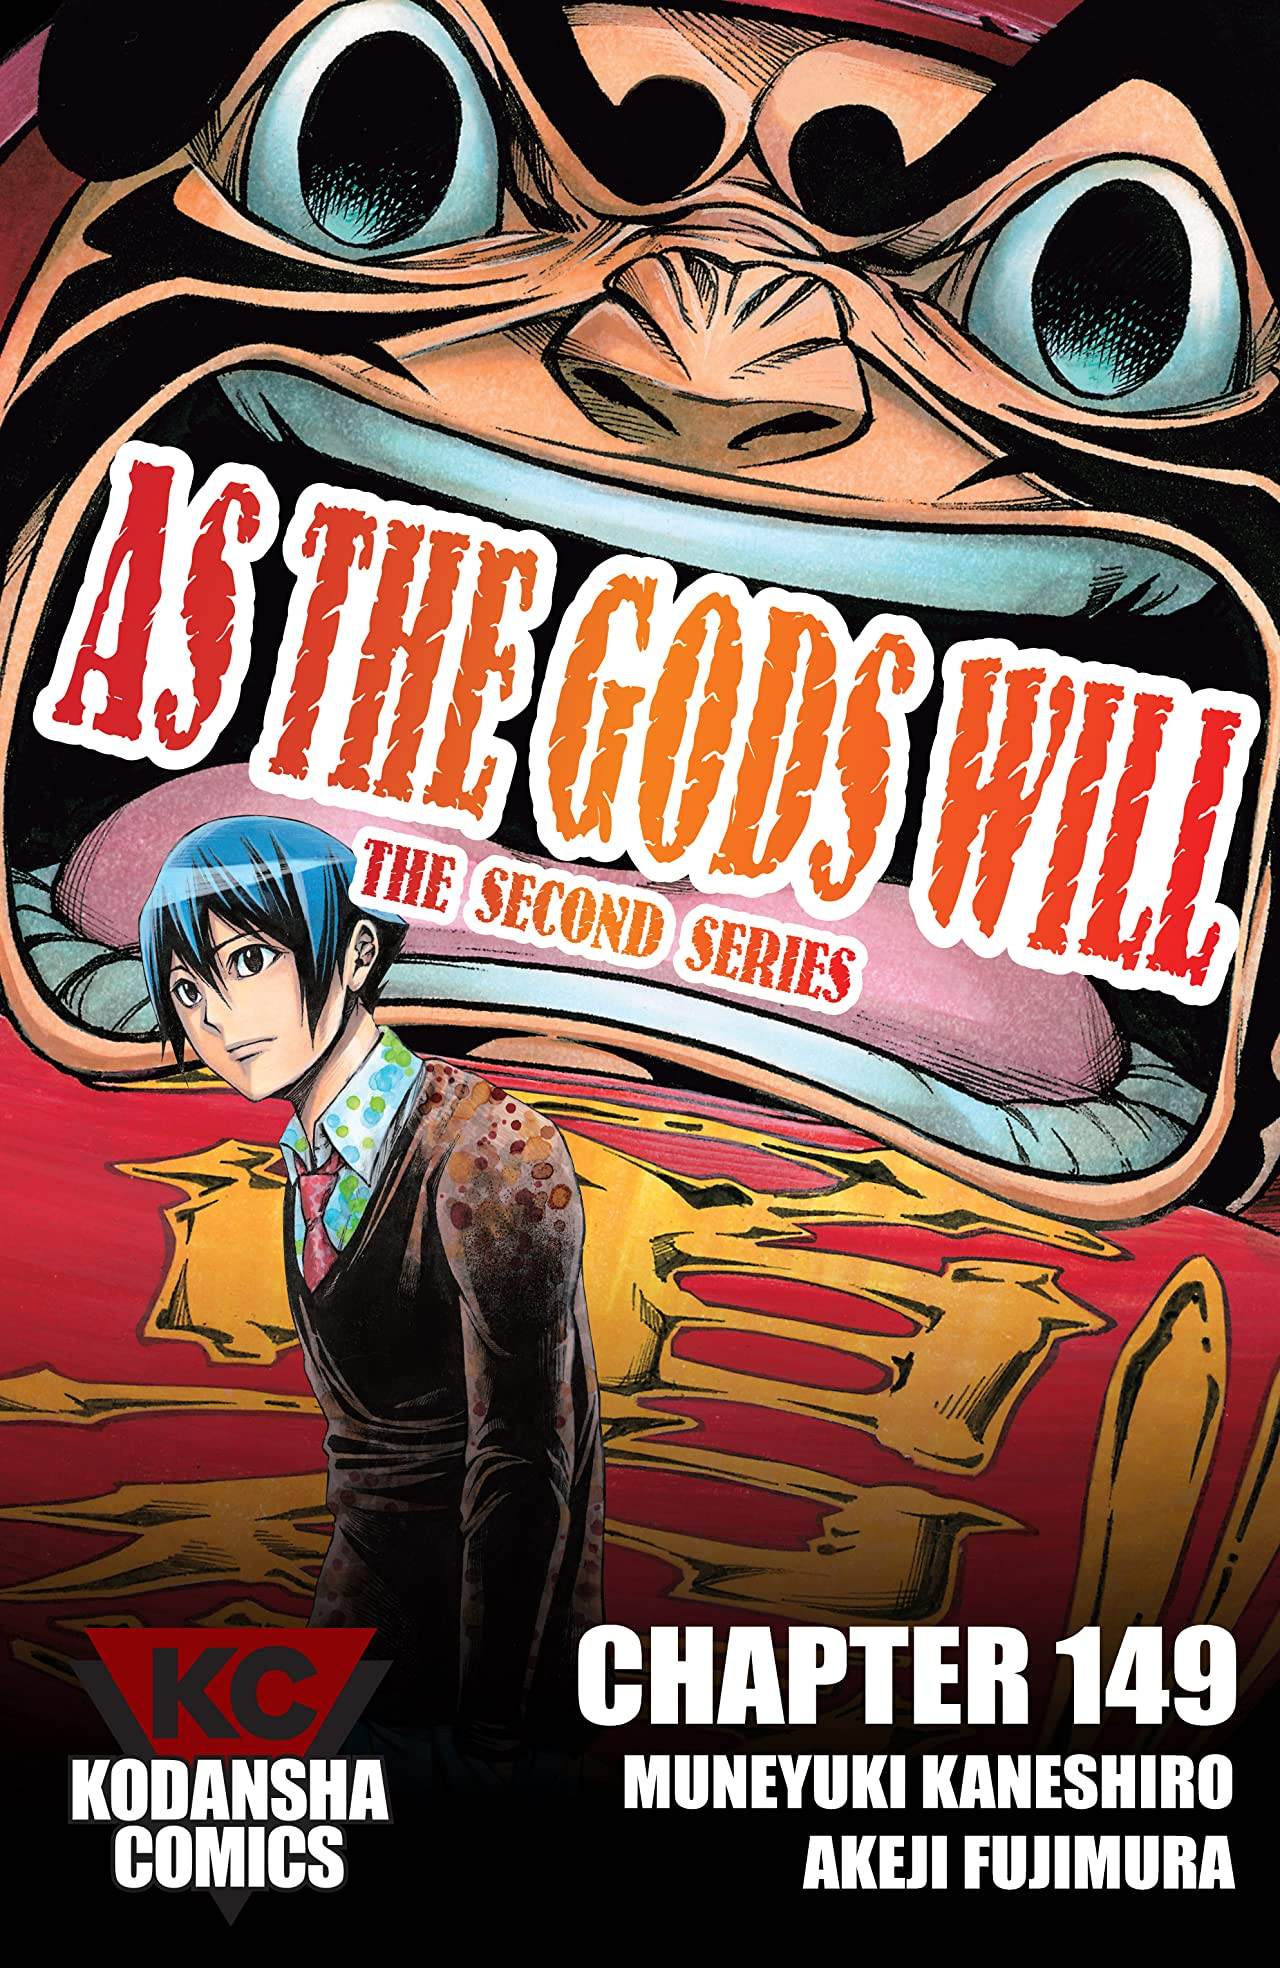 As The Gods Will: The Second Series #149